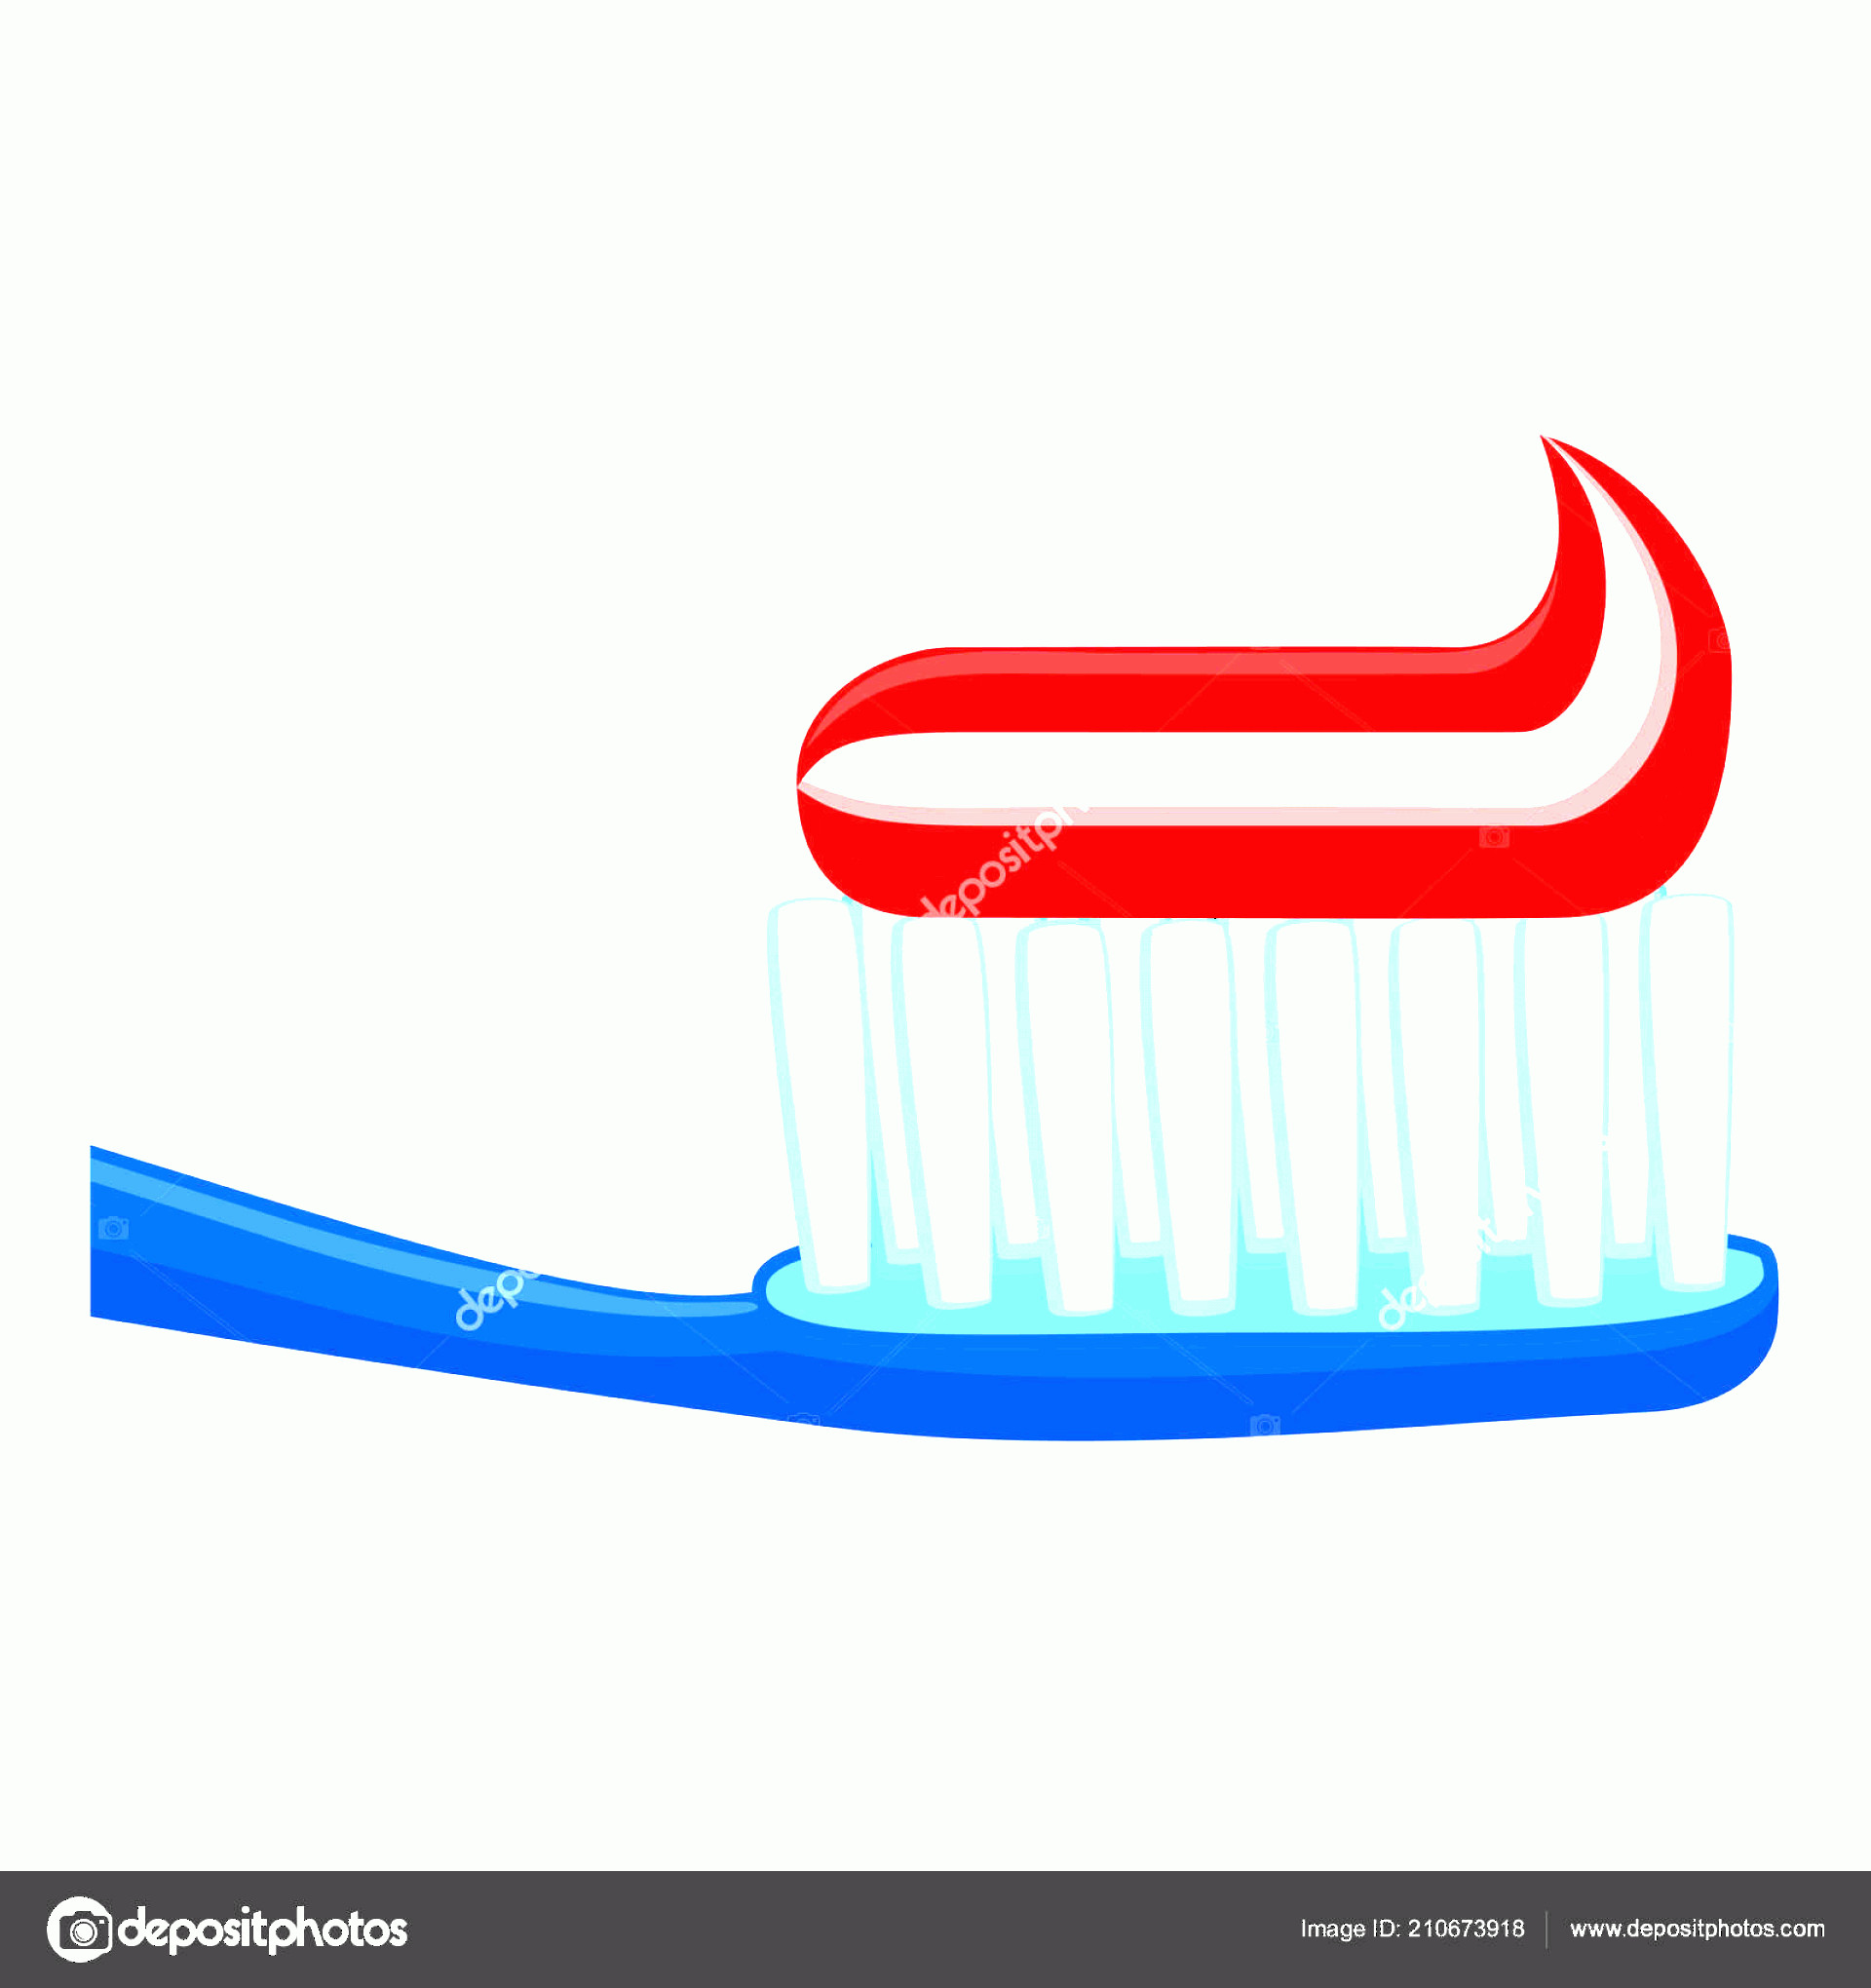 Toothpaste Cartoon Vector: Stock Illustration Colorful Cartoon Toothbrush Toothpaste